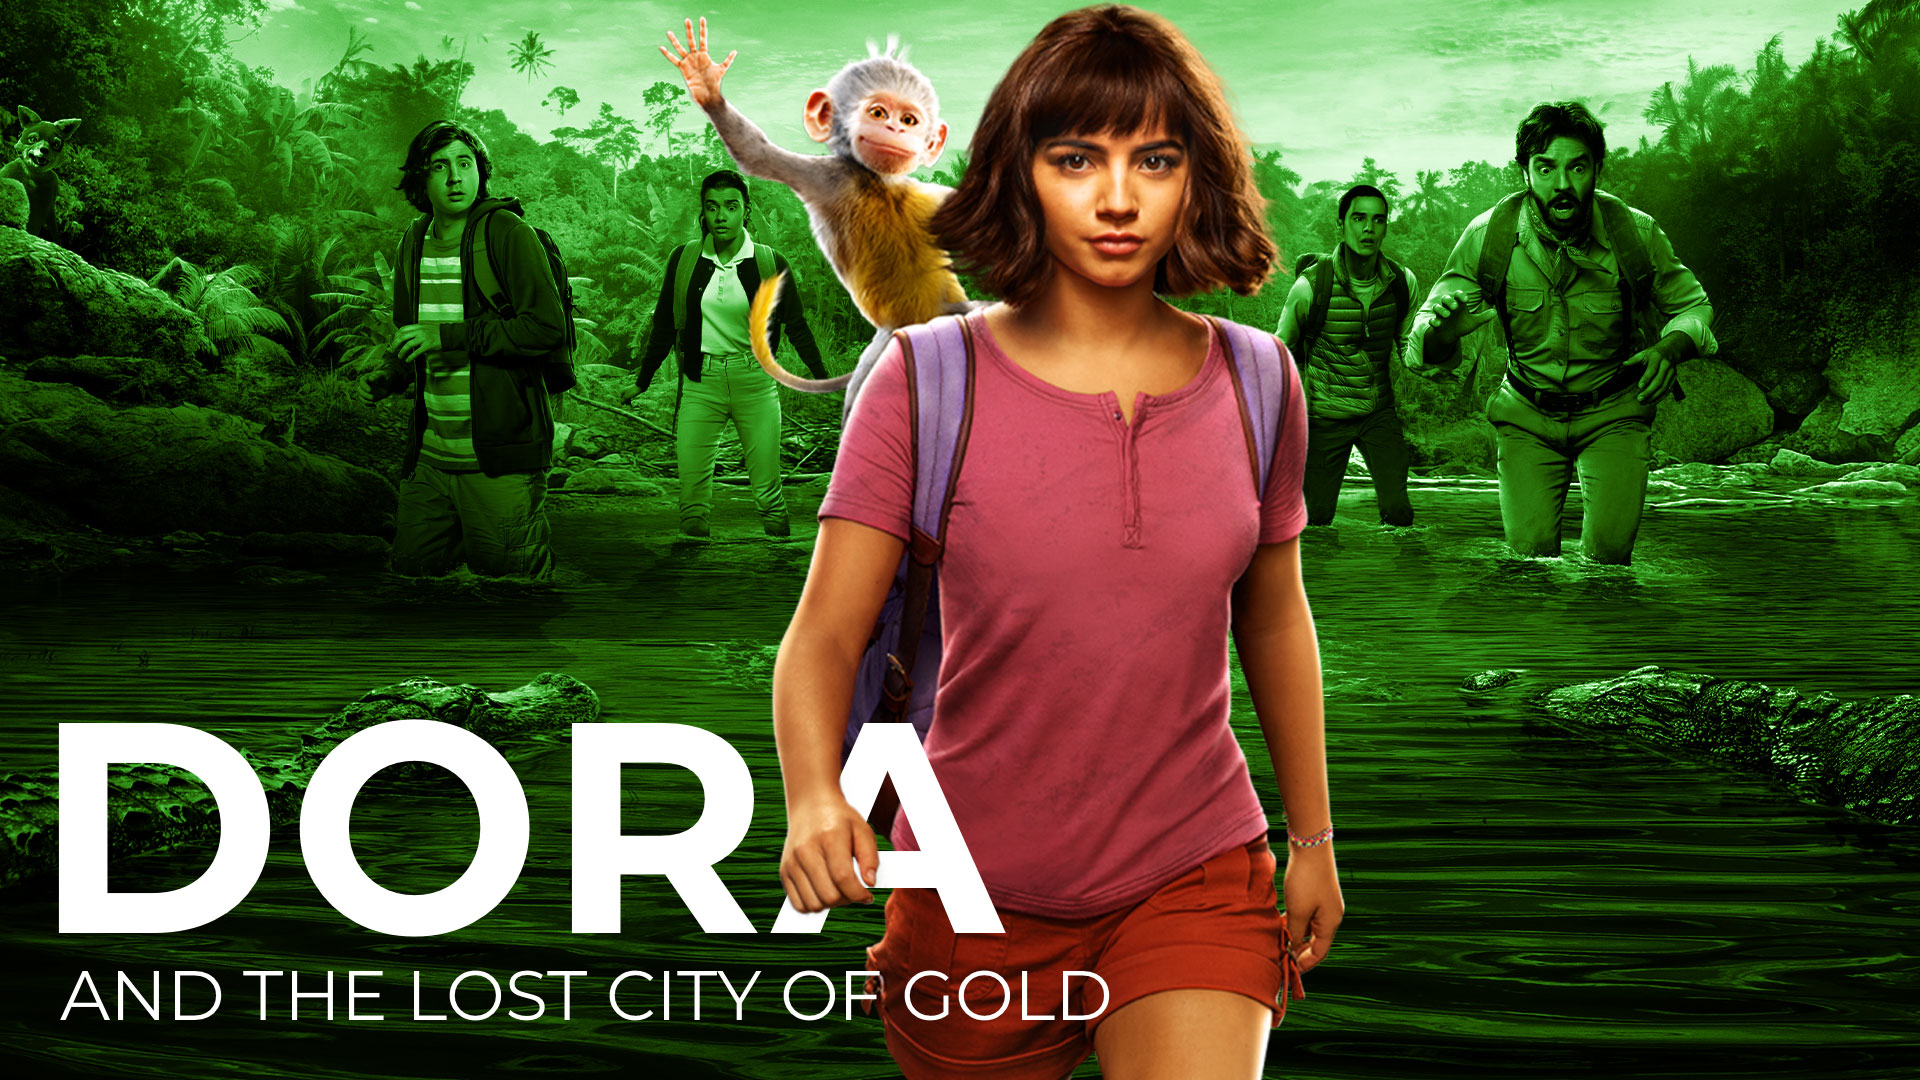 Pixelleration Dora And The Lost City Of Gold